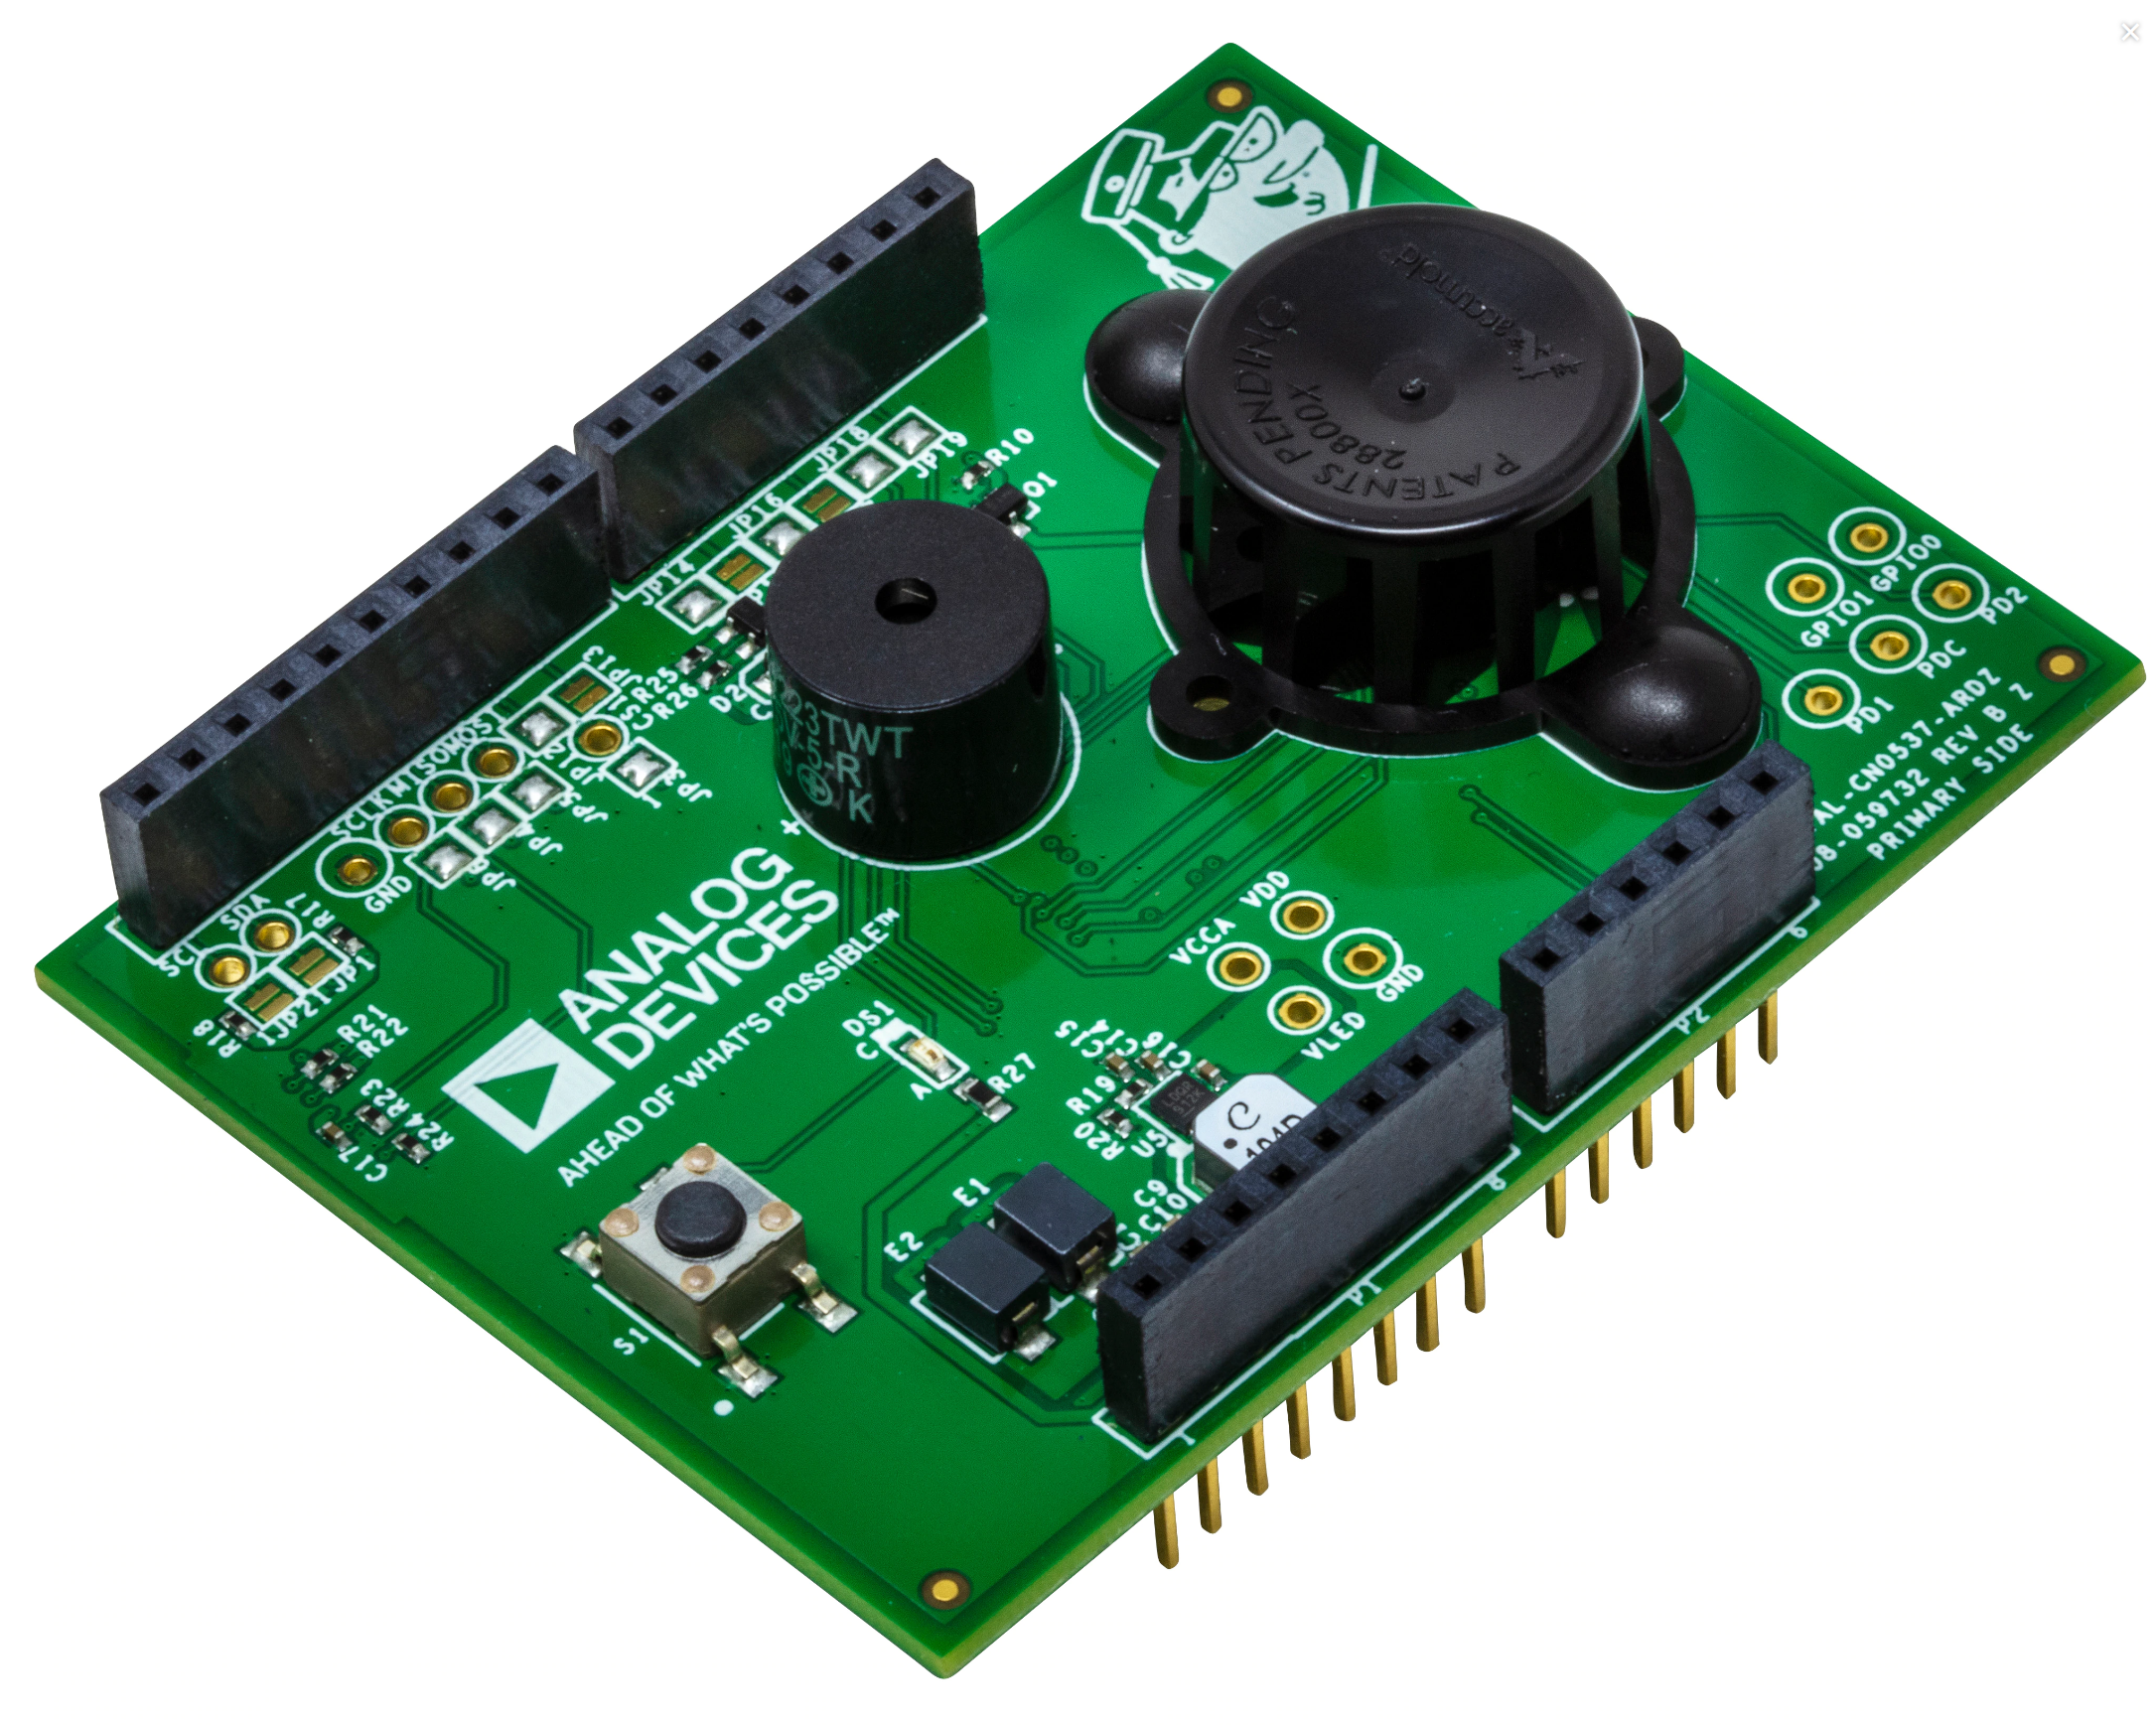 Analog Devices CN0537 Reference Design for UL-217 Smoke Detector